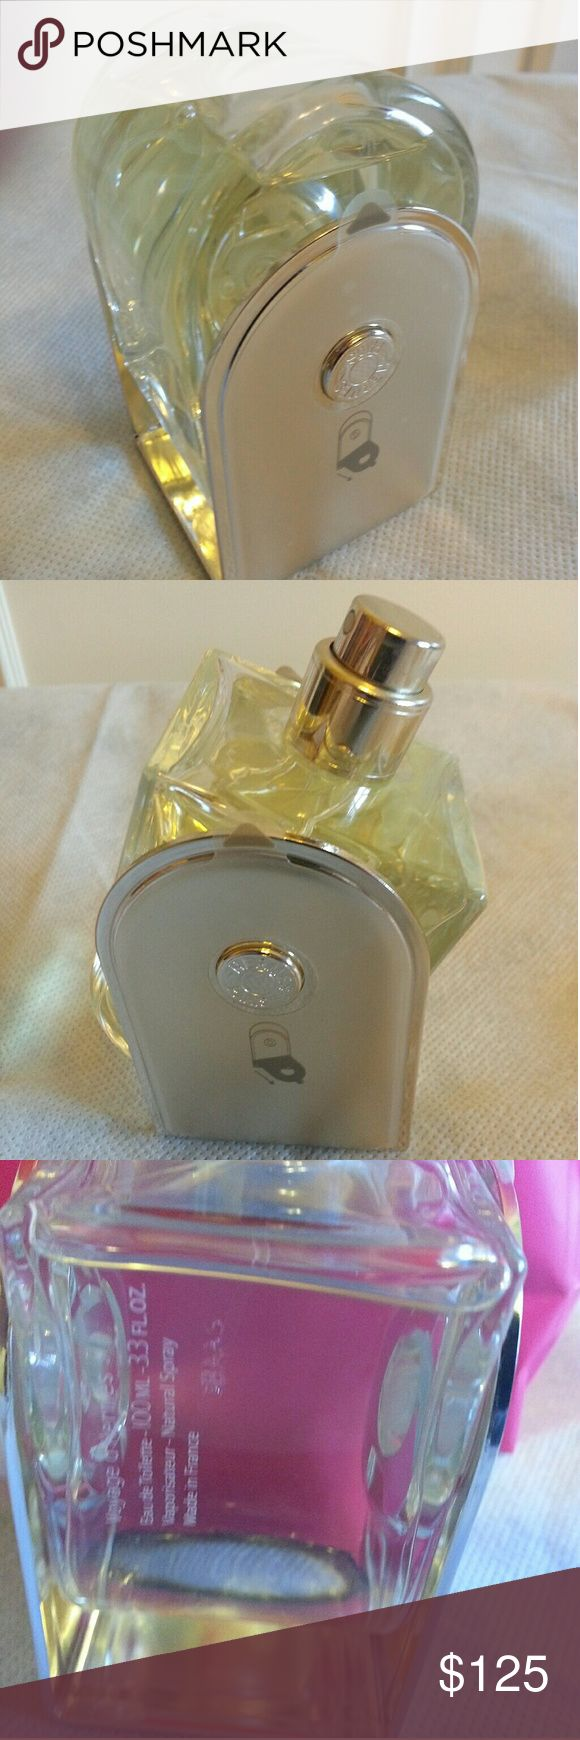 Voyage d'Hermes Eau DE toilette 100ml/3.3oz. Authentic Voyage d'Hermes Spray Perfume. New without box. Gift to me. Never used. Full unused 3.3 fl oz.   Authenticity Serial#3BAAS. Made in France. Purchased @ Nordstrom. For men or women. Reasonable offers welcome. ? Hermes Other